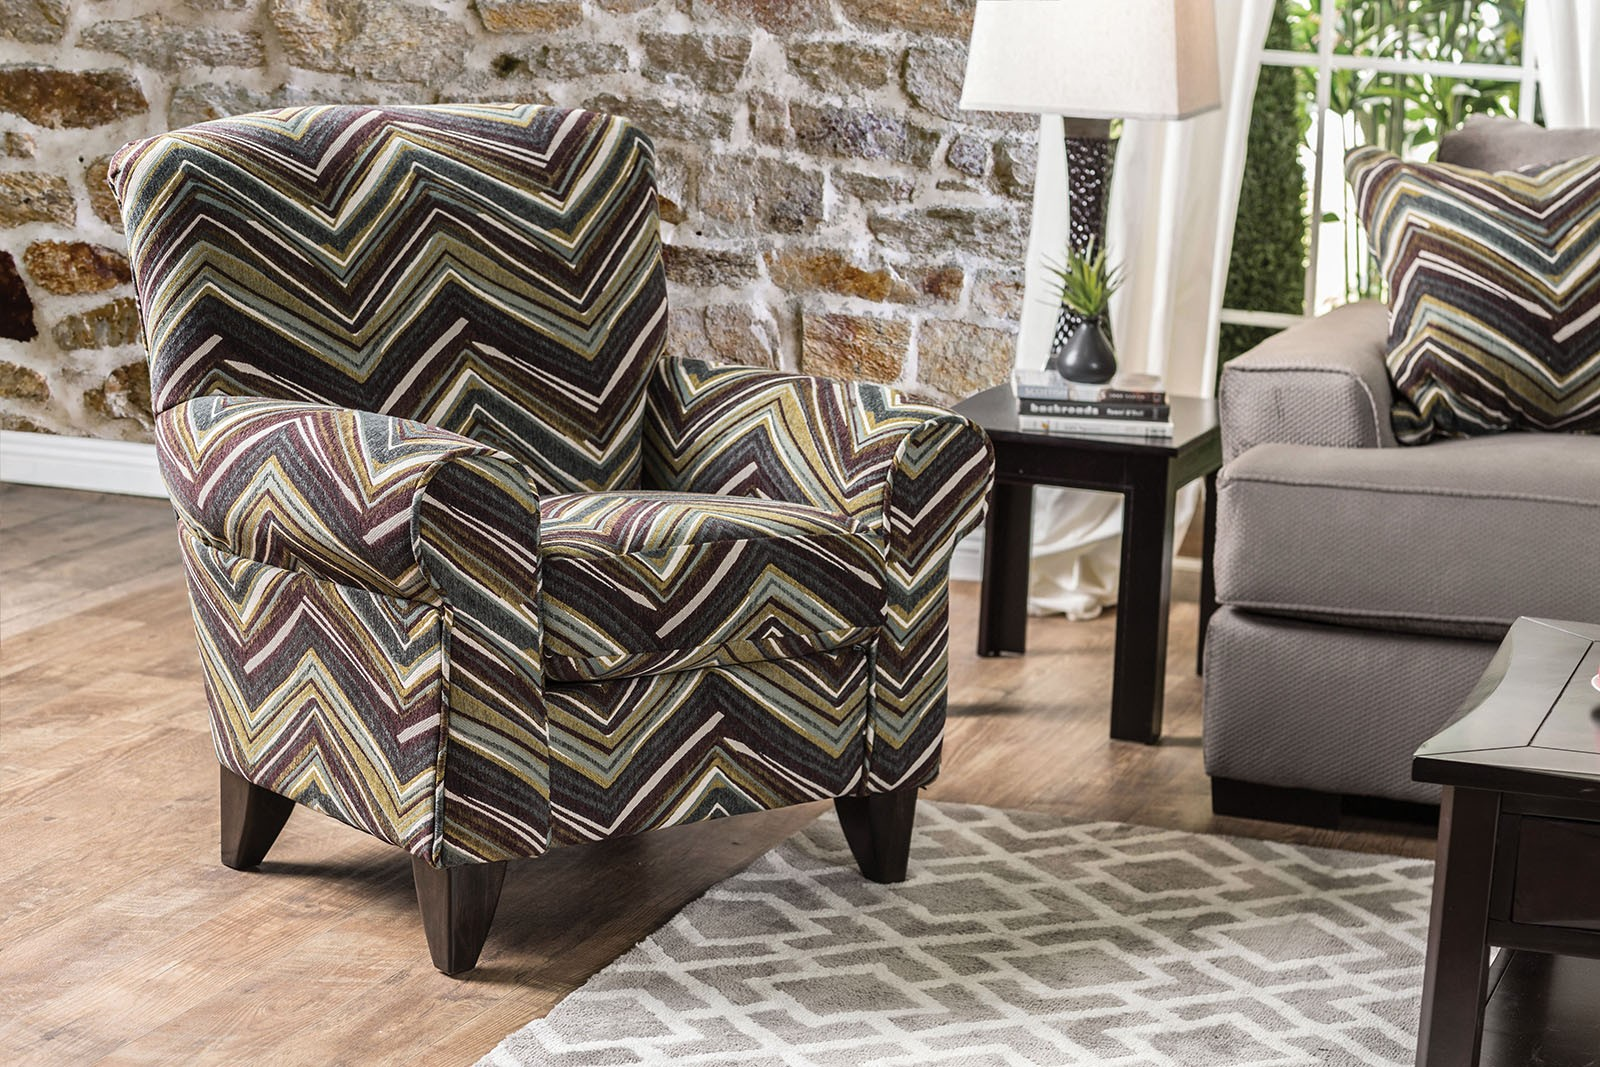 Pattern Chair Cashel Chevron Pattern Chair From Furniture Of America